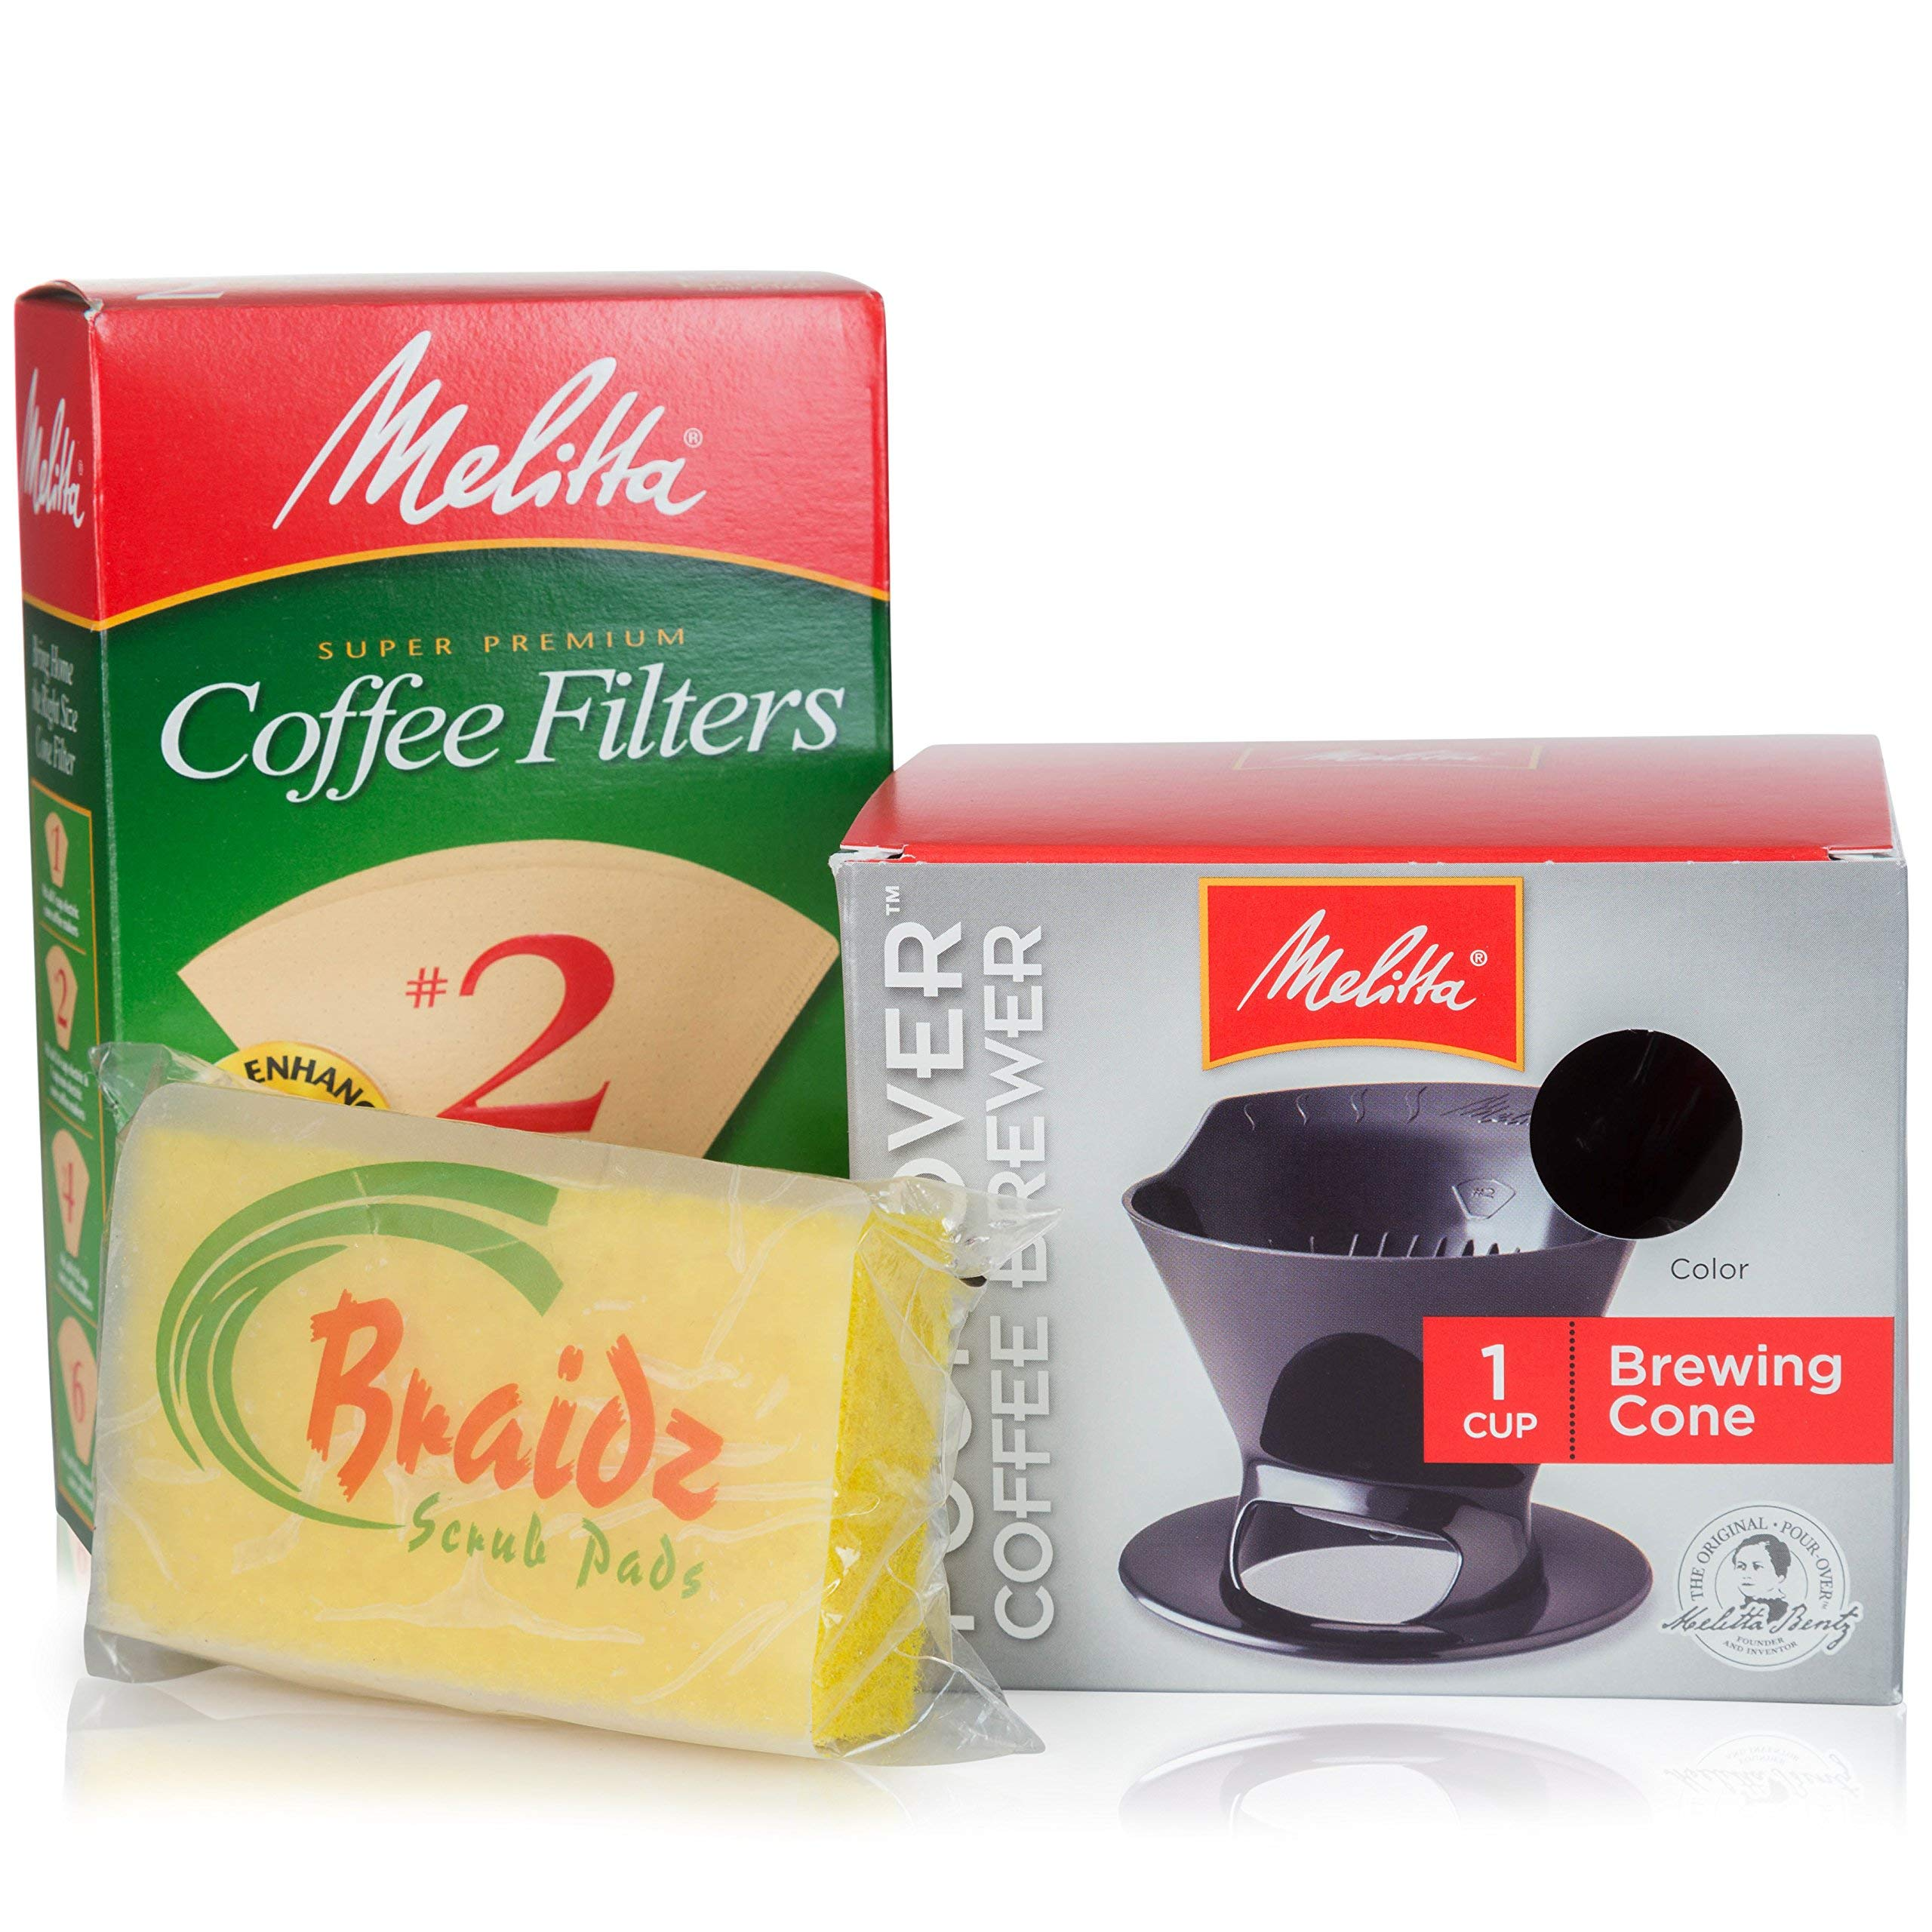 Melitta Coffee Maker Single Cup Pour Over Coffee Brewer with Natural Brown Cone Coffee Filters #2 100-Count and a Braidz Scrub Pad by Melitta